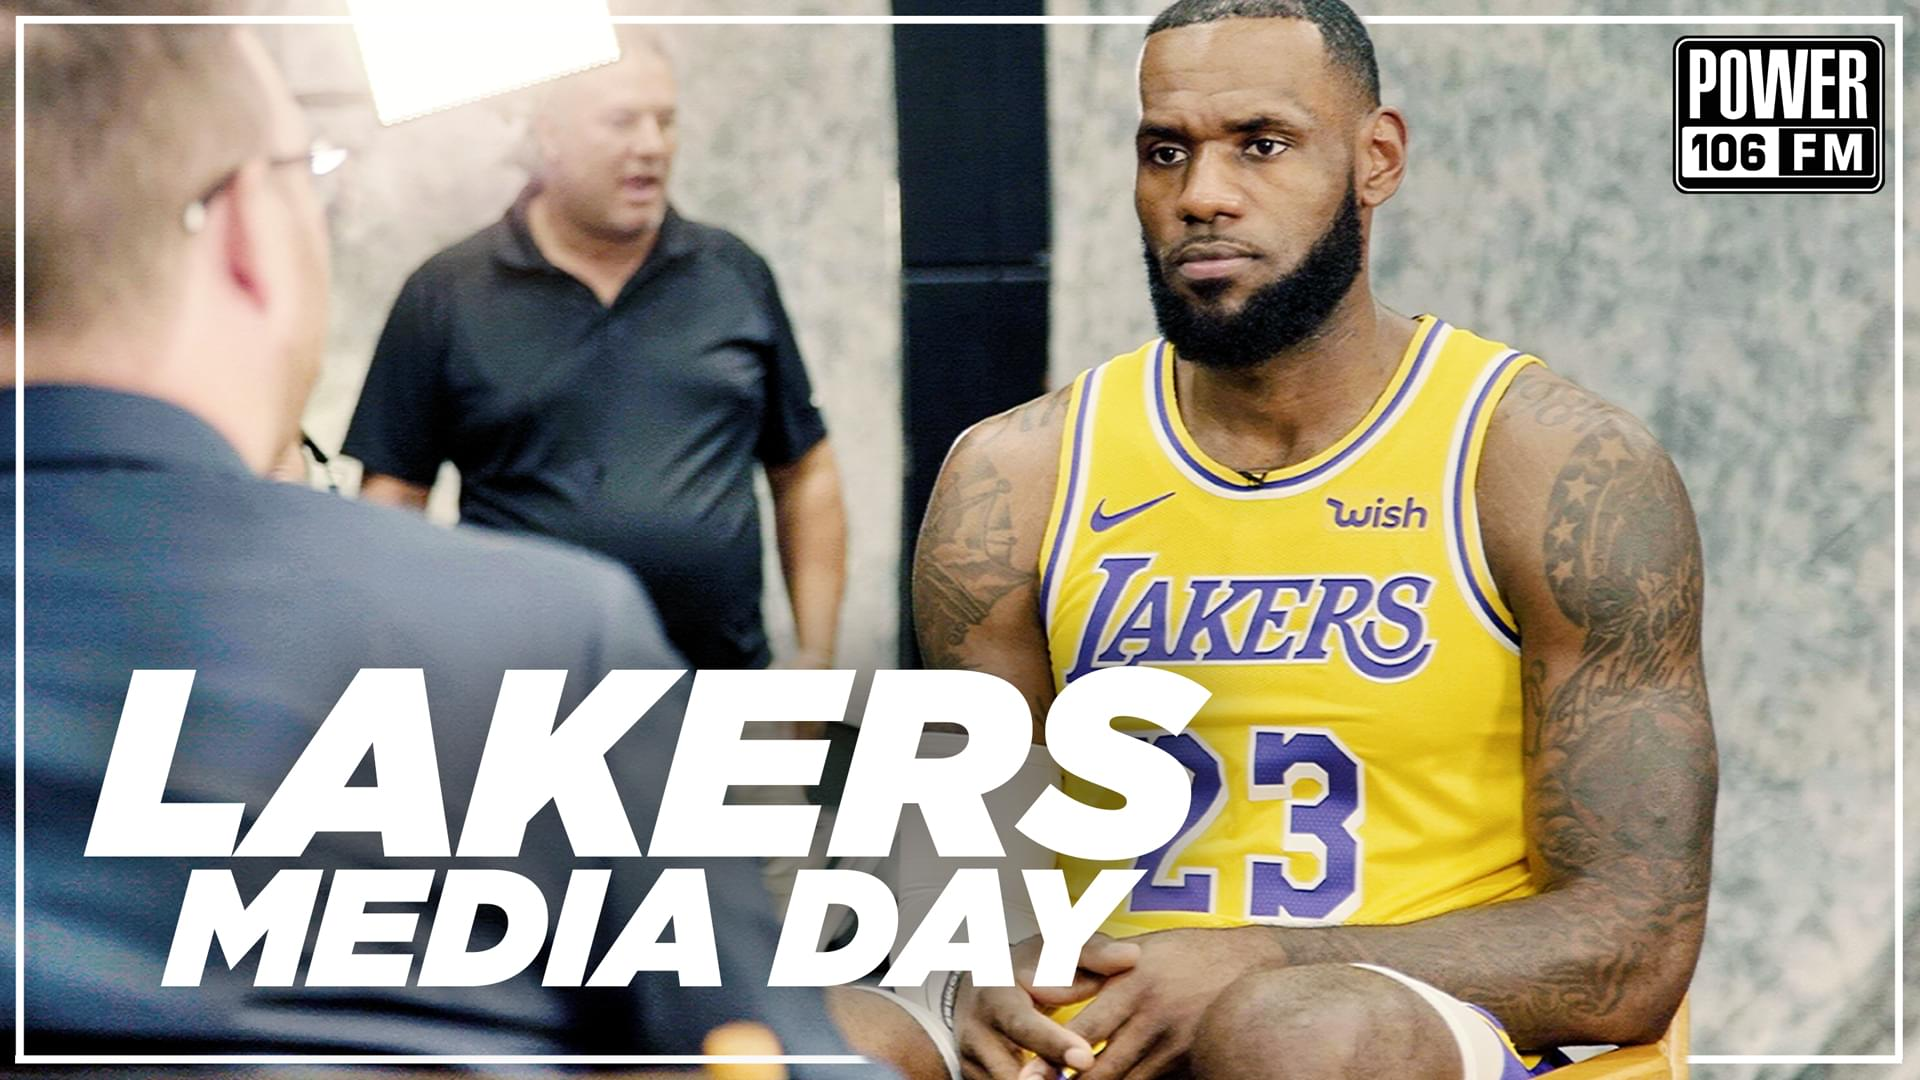 Lakers Media Day 2018 With LeBron & Team On Upcoming Season [WATCH]